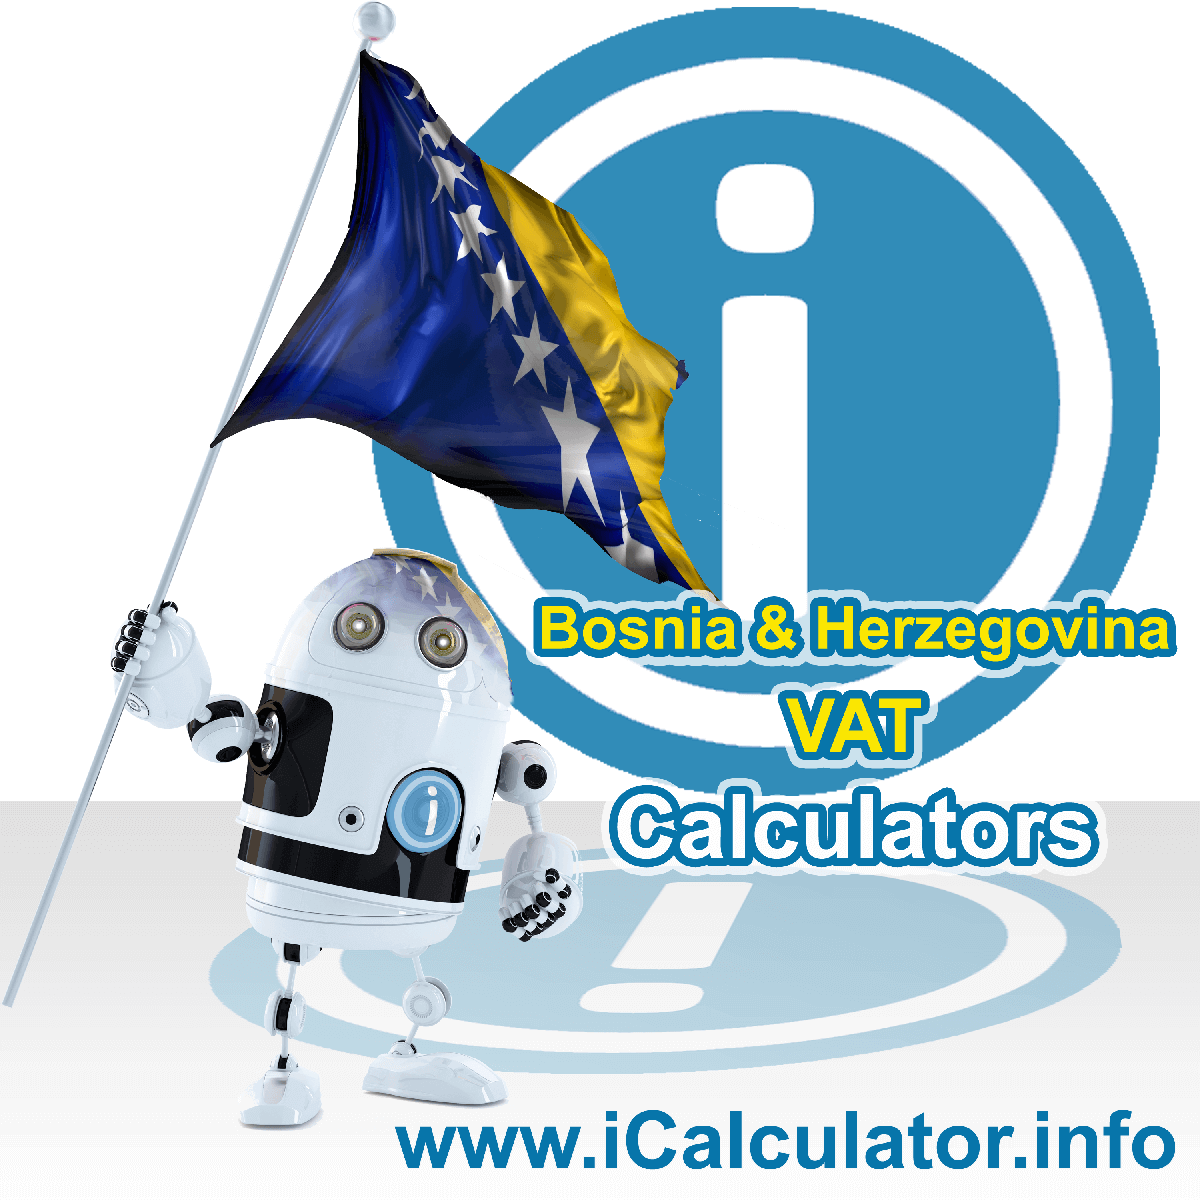 Bosnia And Herzegovina VAT Calculator. This image shows the Bosnia And Herzegovina flag and information relating to the VAT formula used for calculating Value Added Tax in Bosnia And Herzegovina using the Bosnia And Herzegovina VAT Calculator in 2020